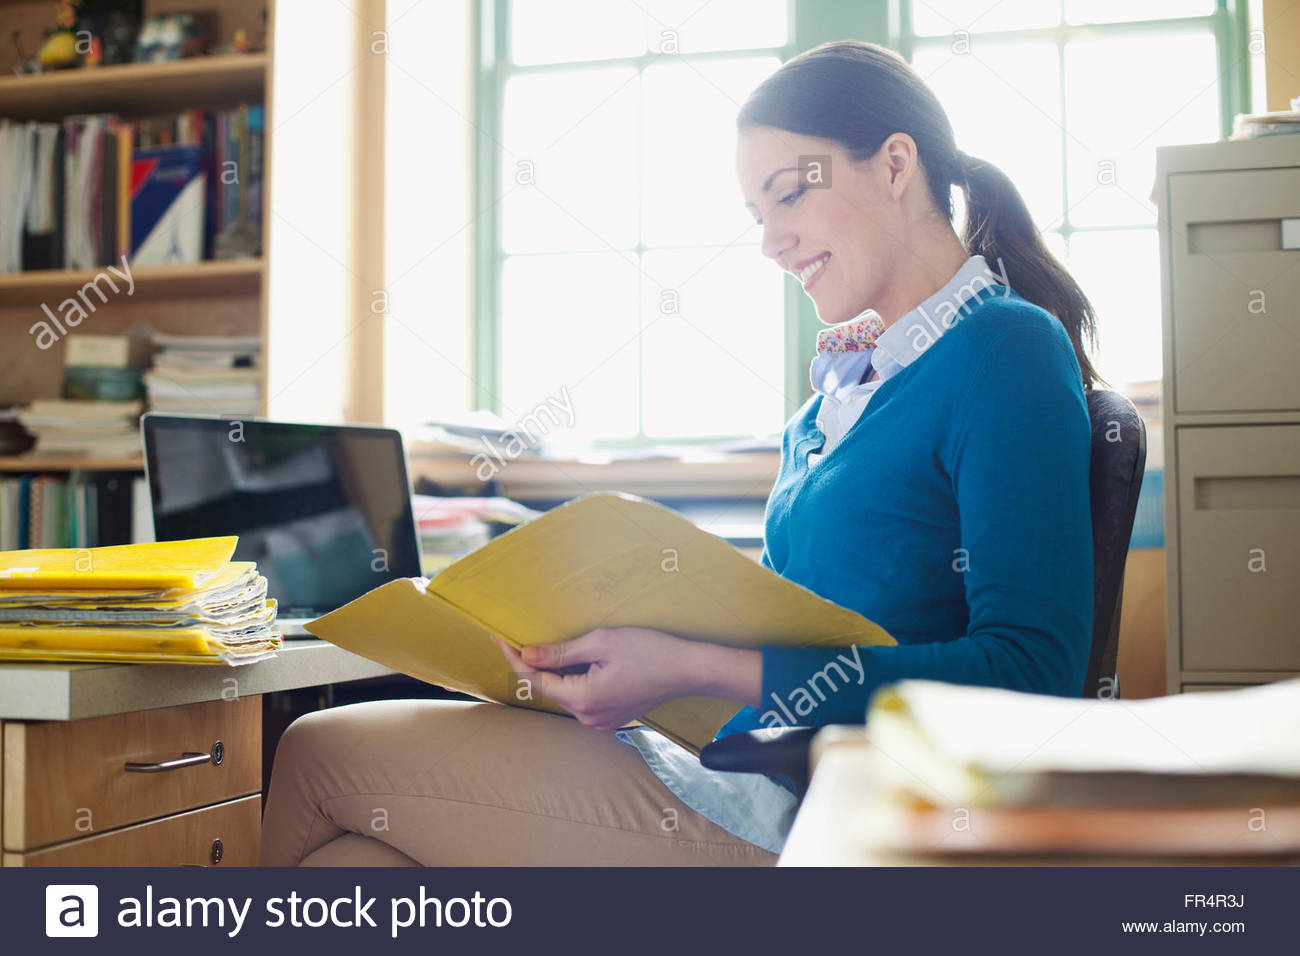 elementary school teacher reviewing papers - Stock Image